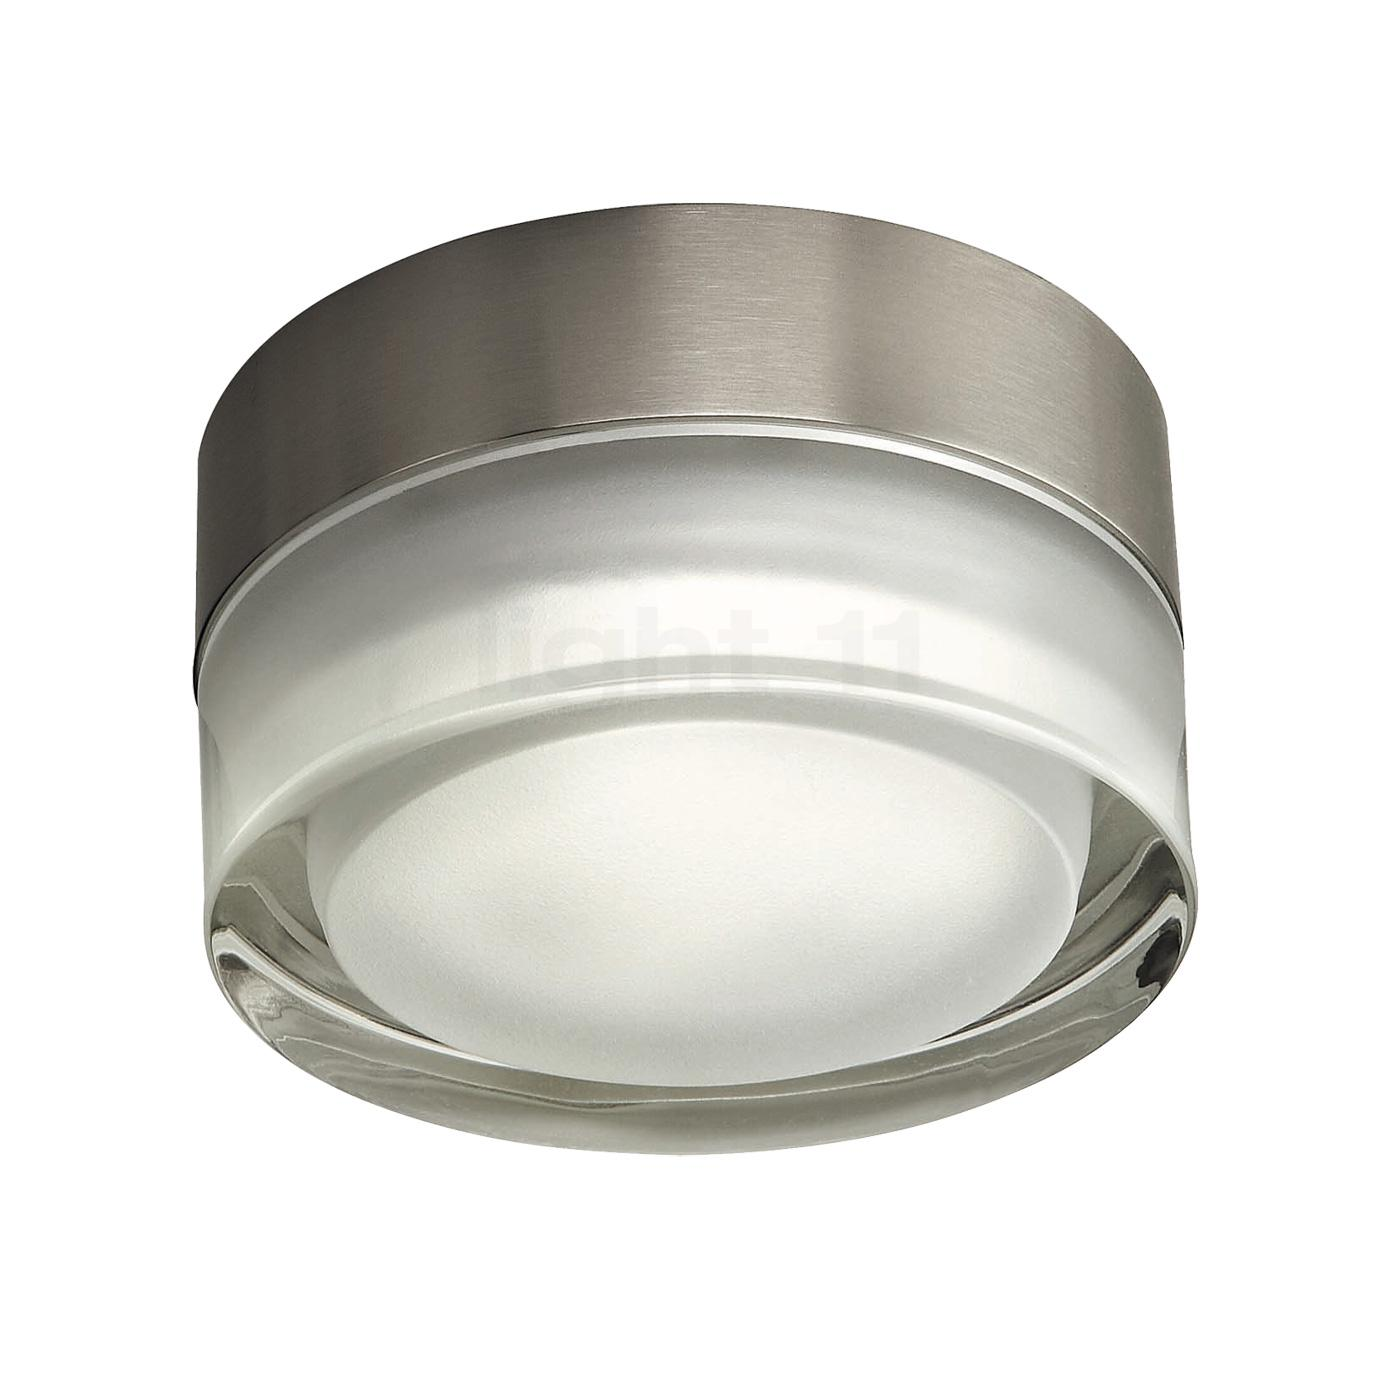 philips ecomoods ceiling light photo - 2